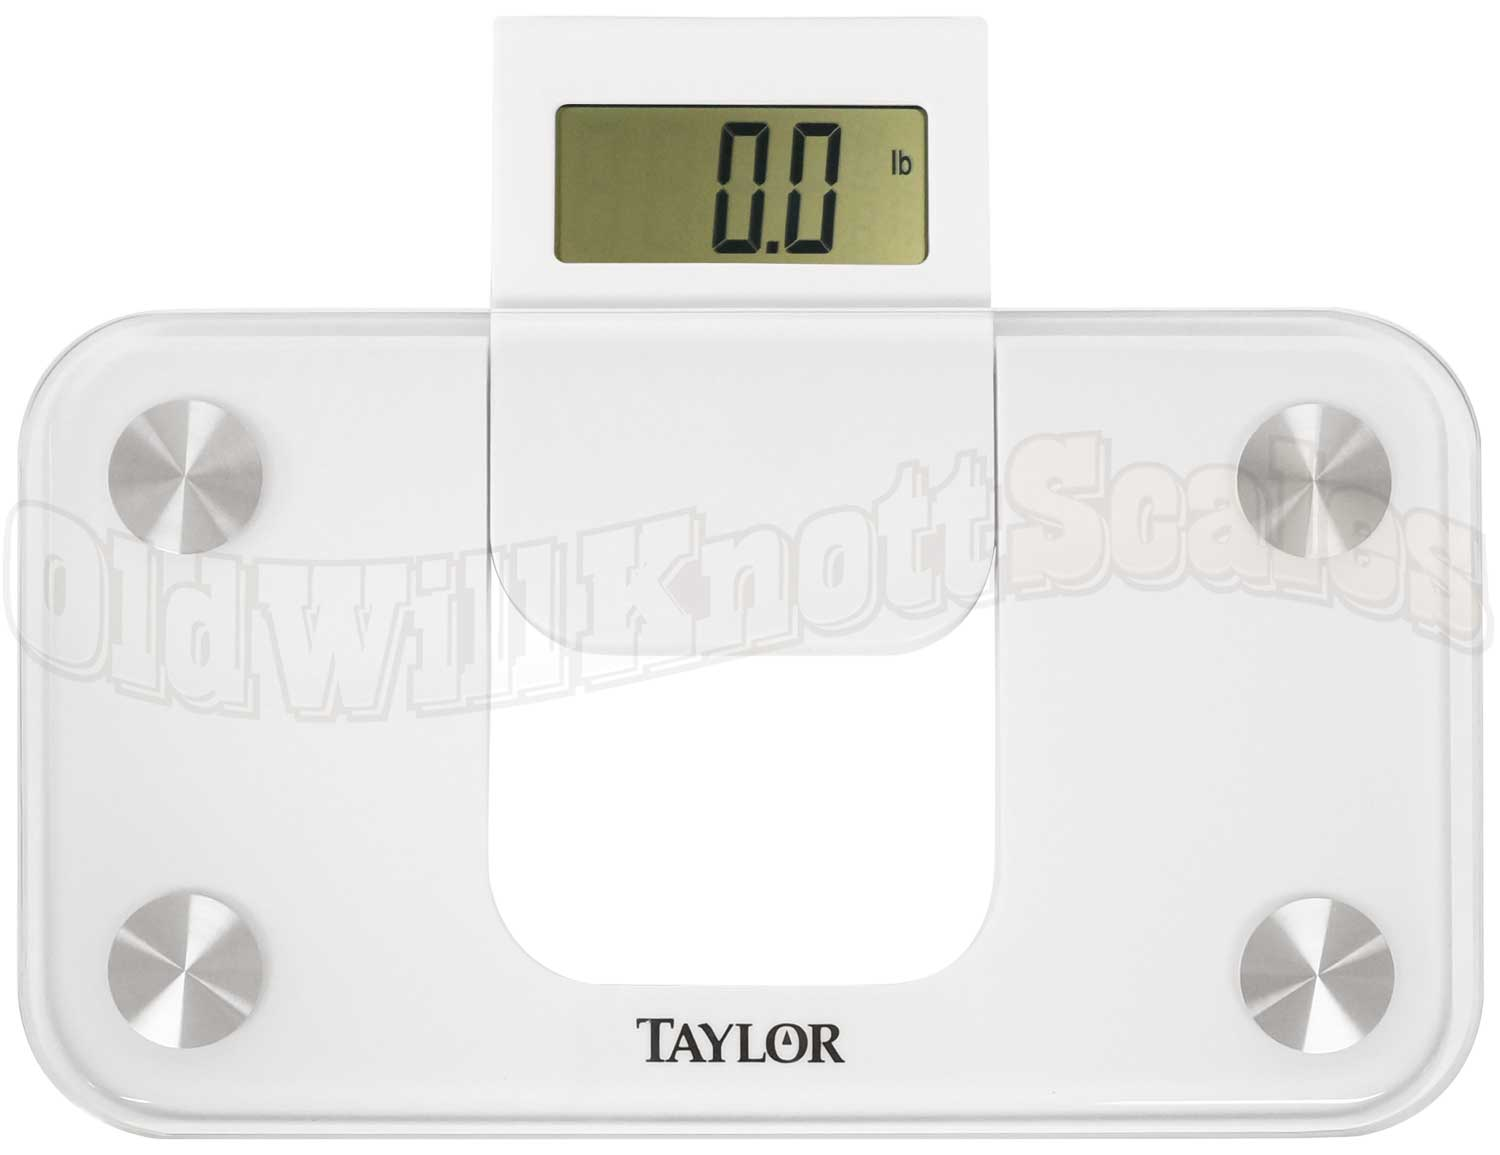 Taylor 7086 Min Bathroom Scale With Slide Out Display